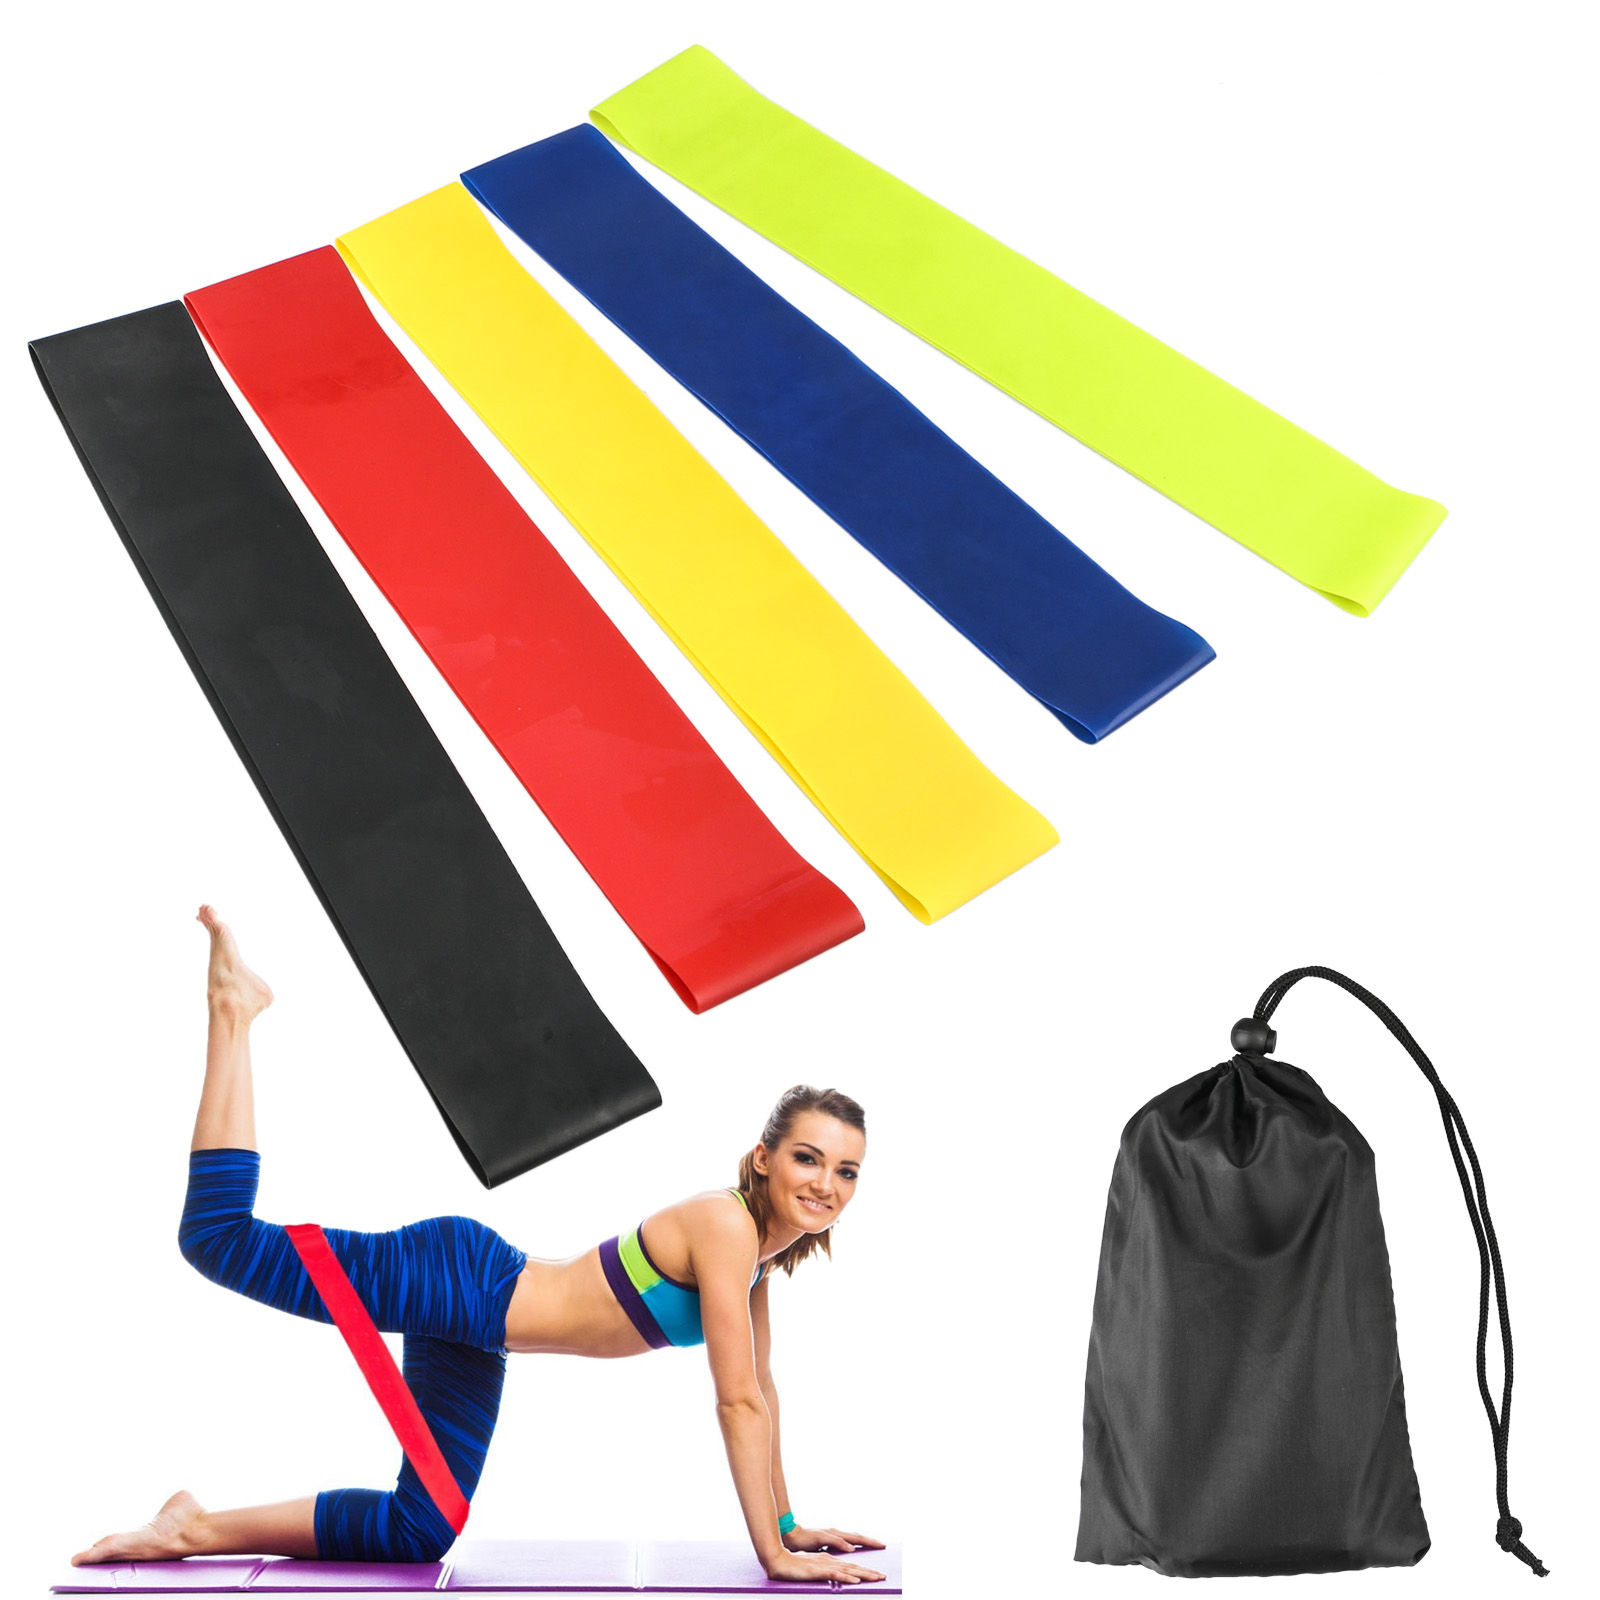 EEEKit 5-pack Loops Exercise Resistance Bands for Home Workout, Pilates, Yoga, Rehab, Physical Therapy, CrossFit, Fitness with Carry Bag